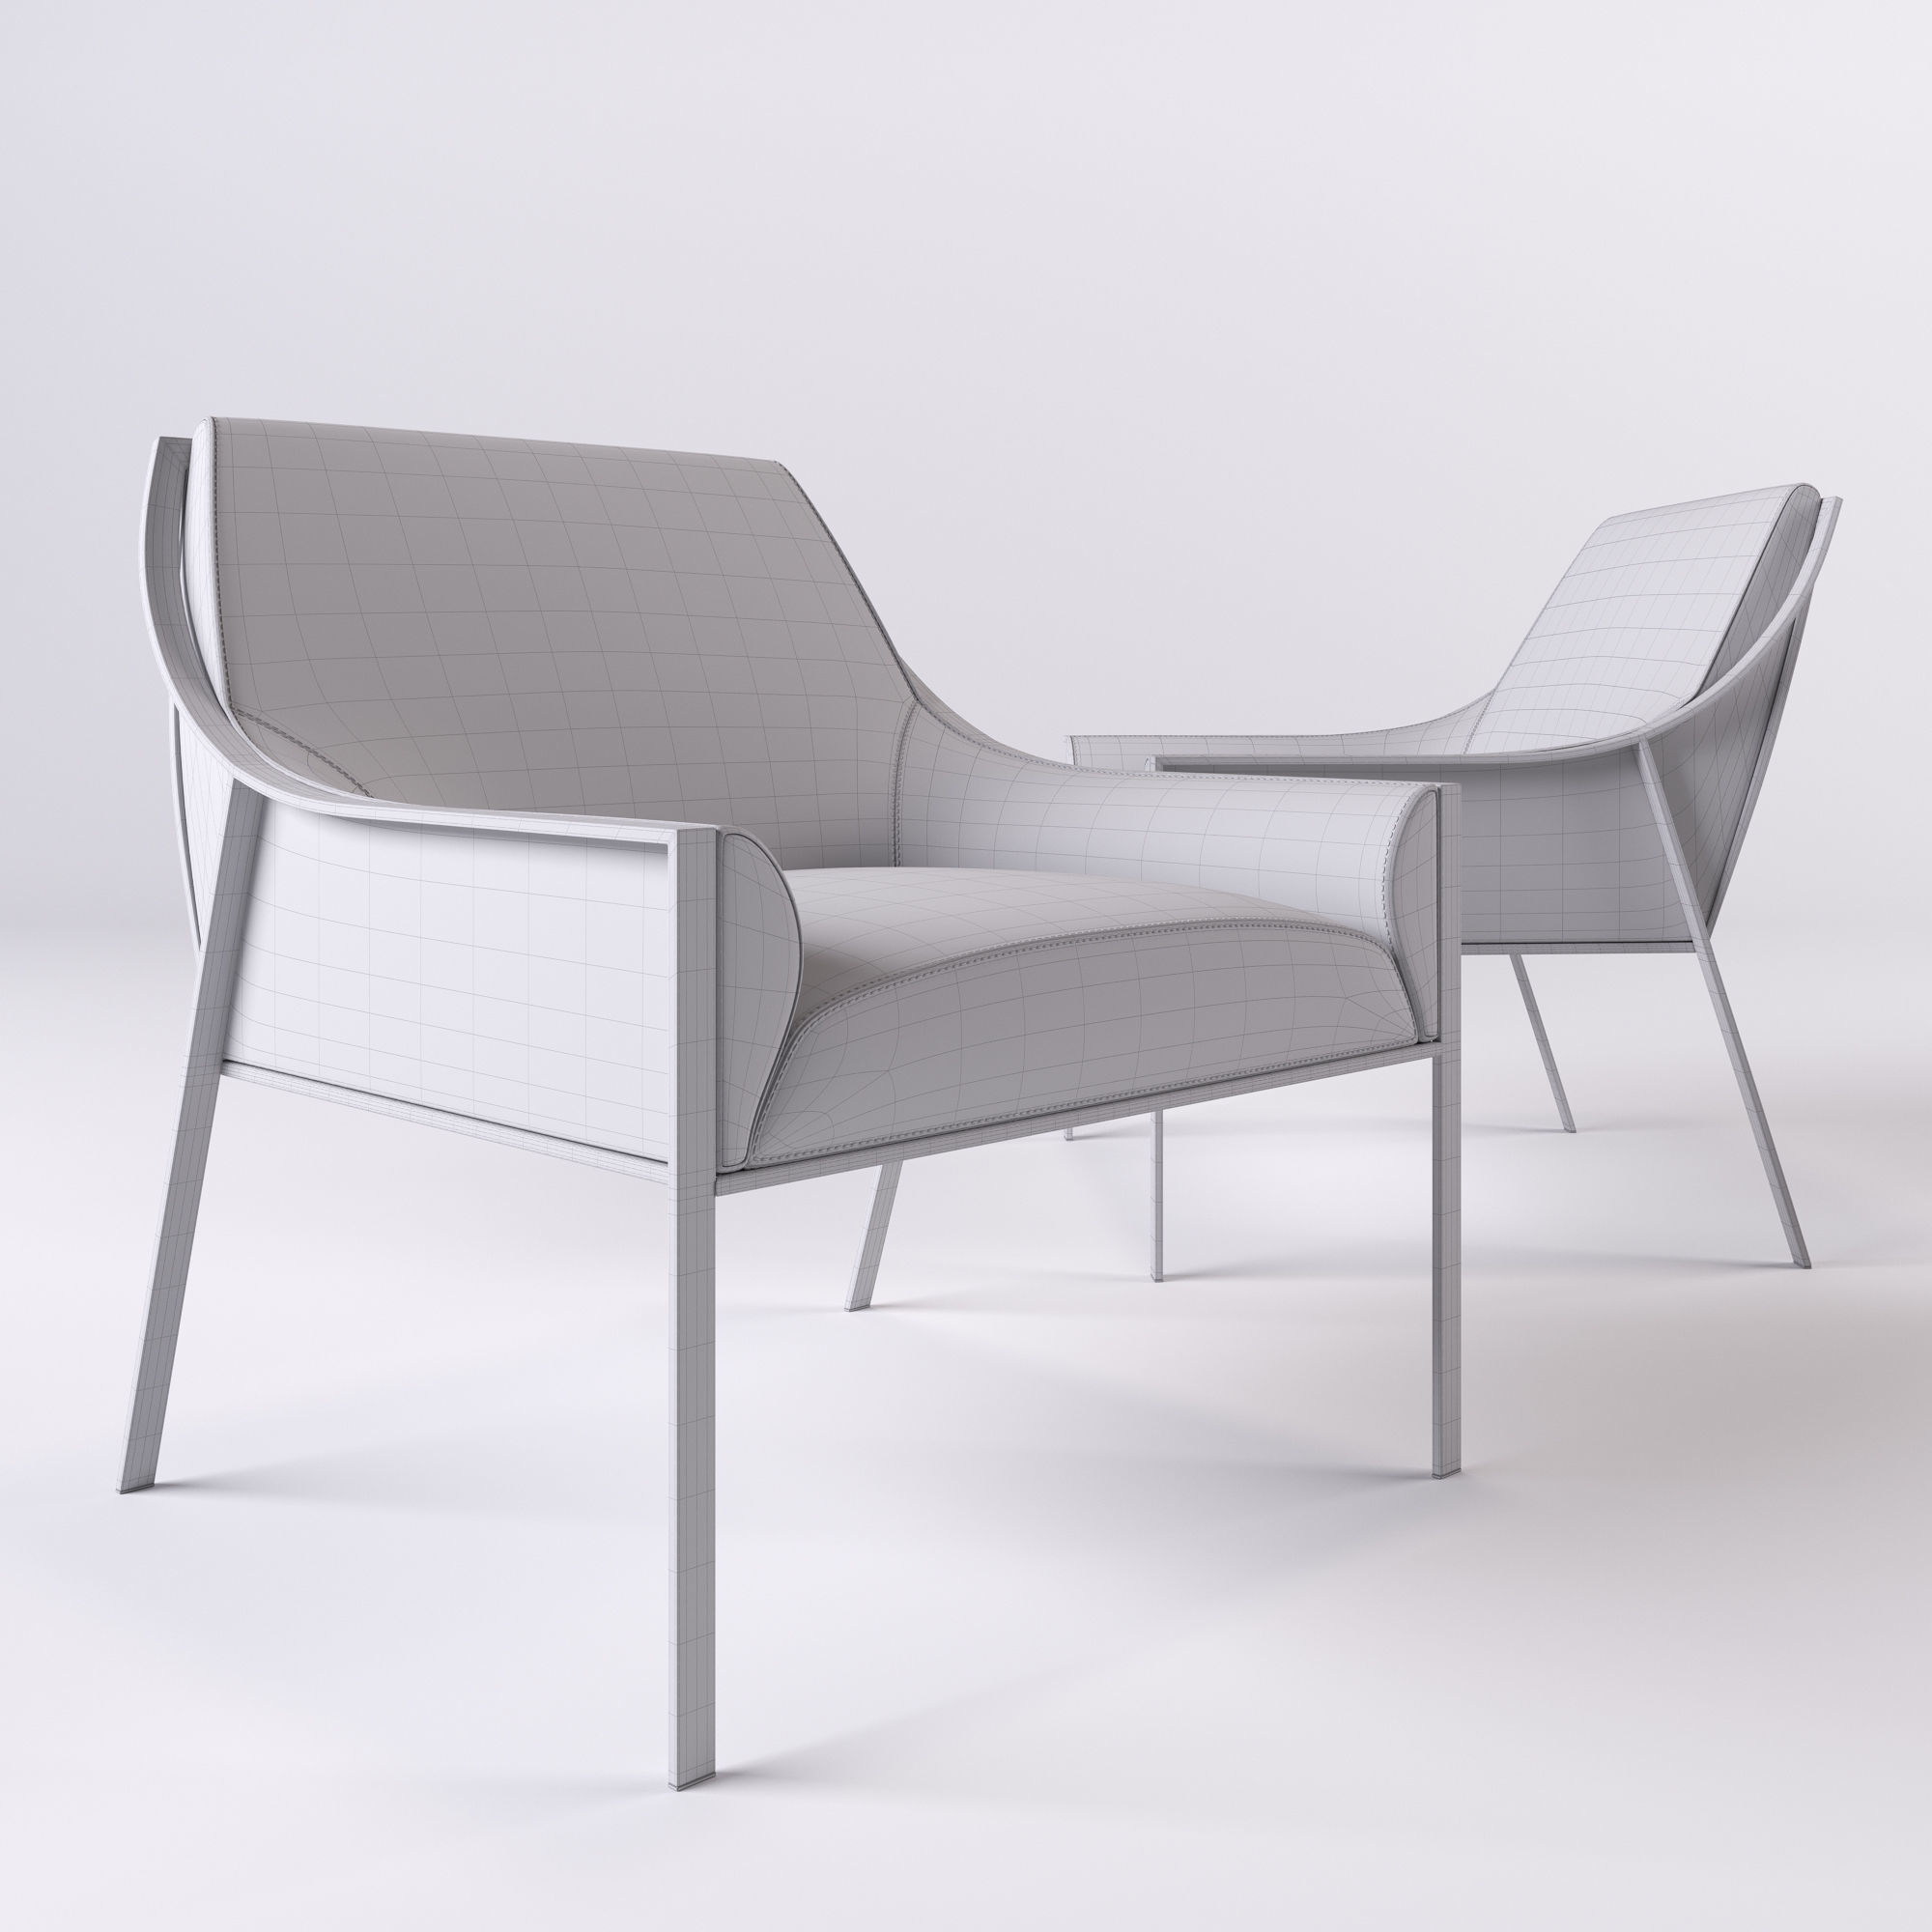 ... Holly Hunt Aileron Occasional Chair 3d Model Max Obj Fbx 3